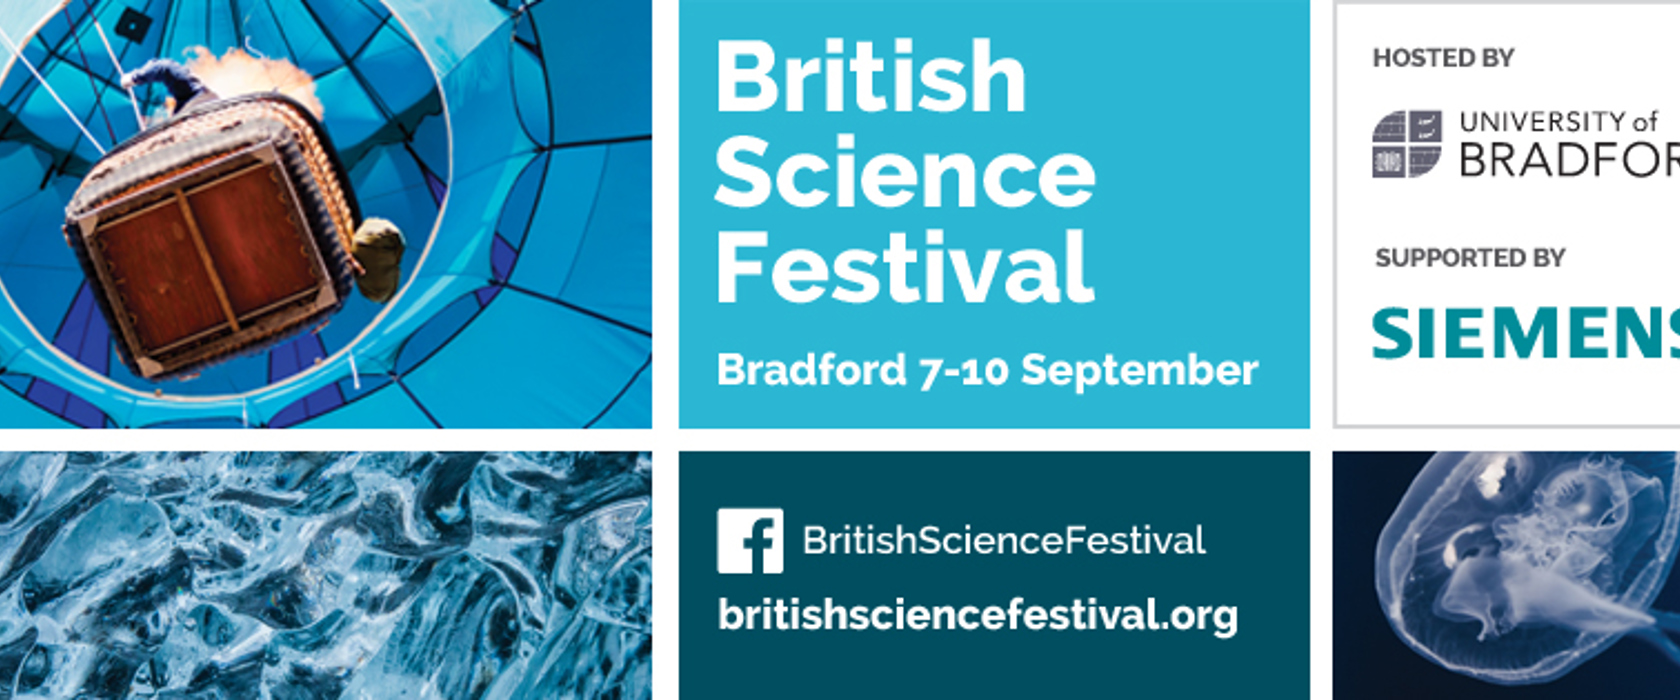 Booking open for the British Science Festival 2015